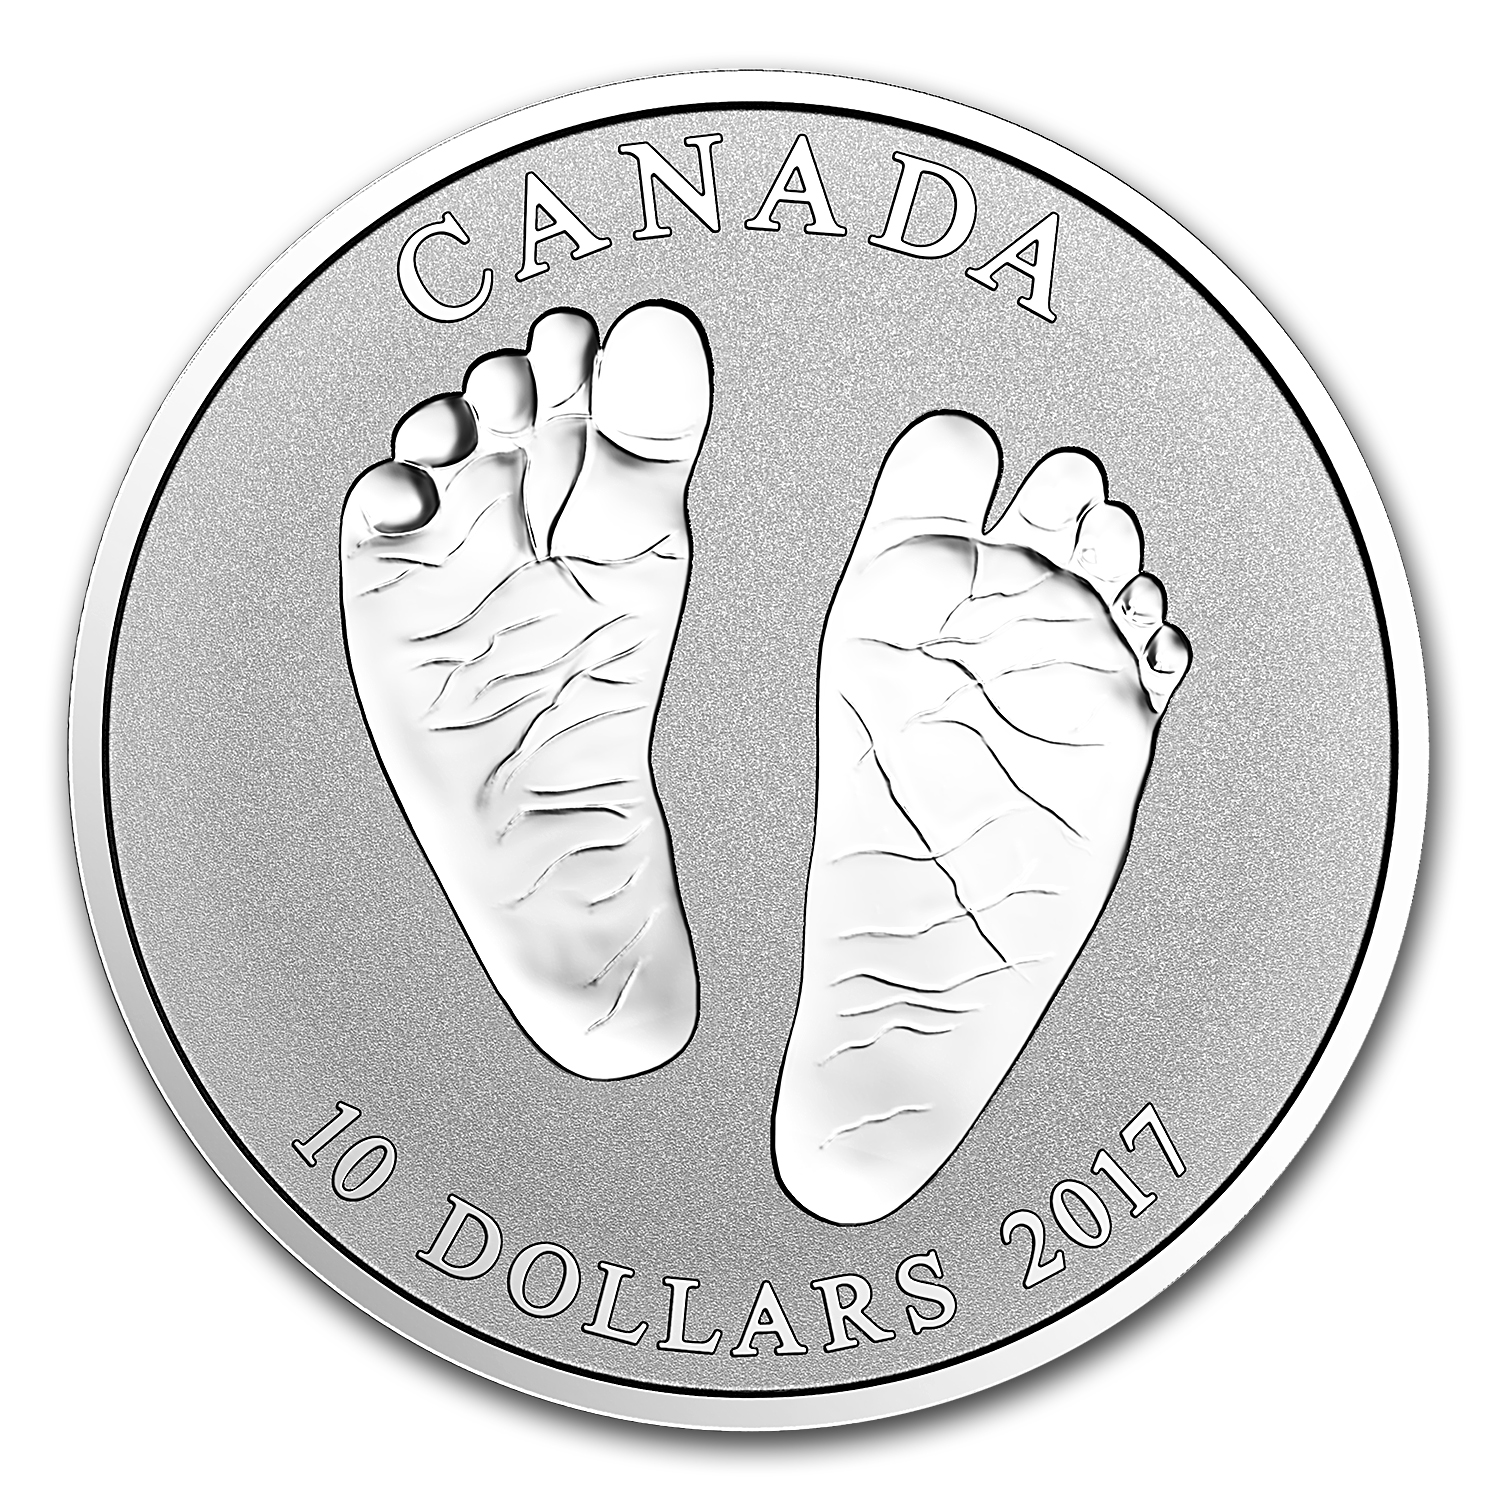 2017 Canada 1/2 oz Silver $10 Welcome Baby Reverse Proof